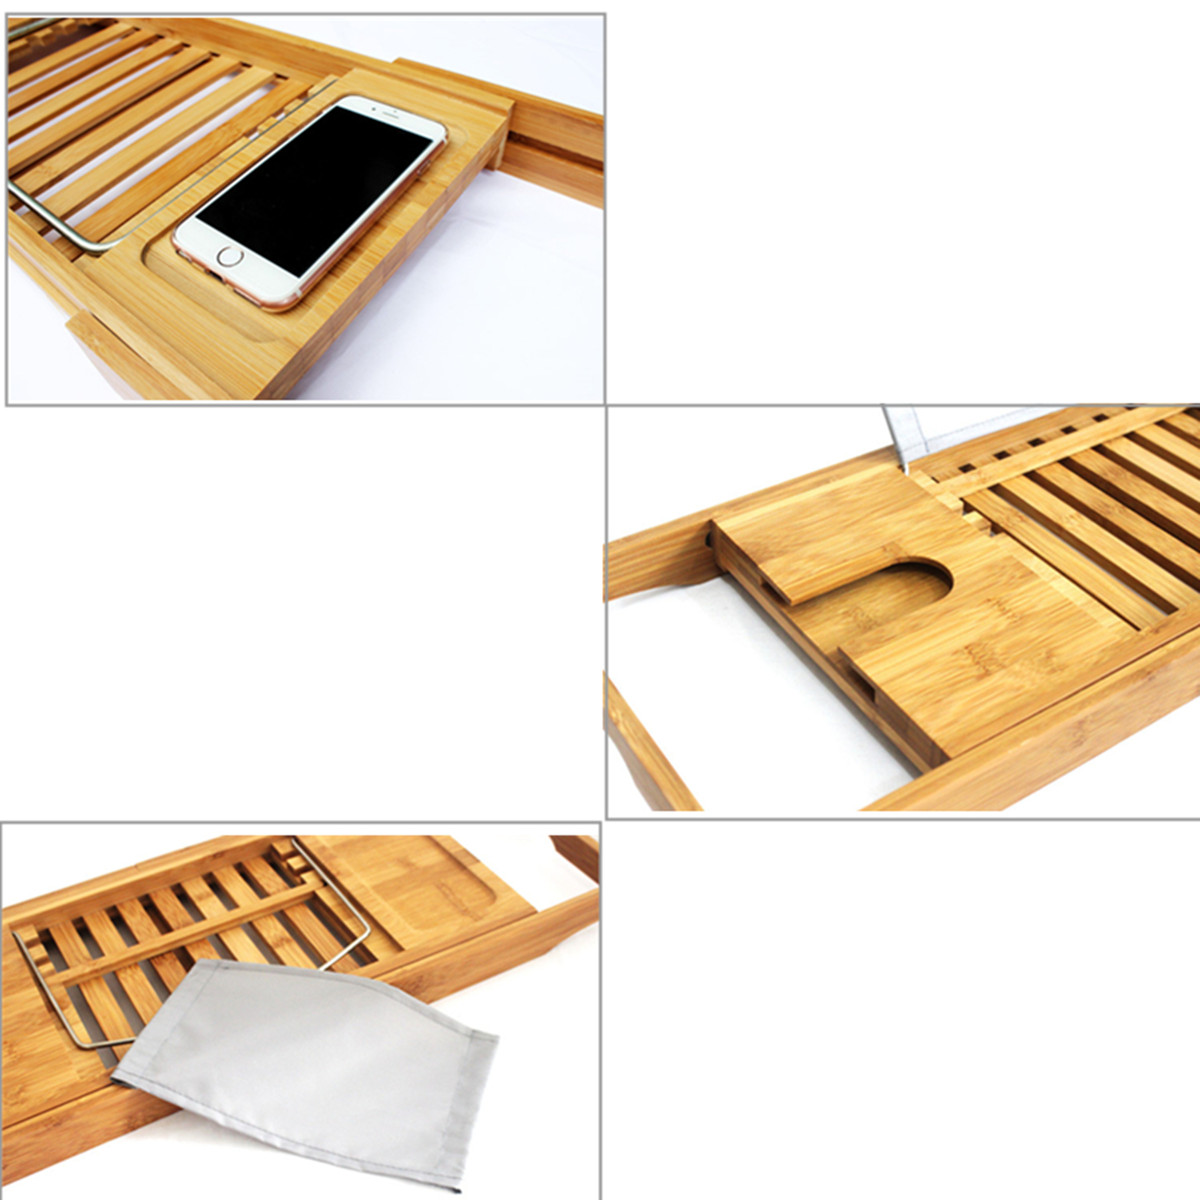 Extendable Bathroom Bamboo Bath Caddy Wine Glass Book Holder Bathtub ...